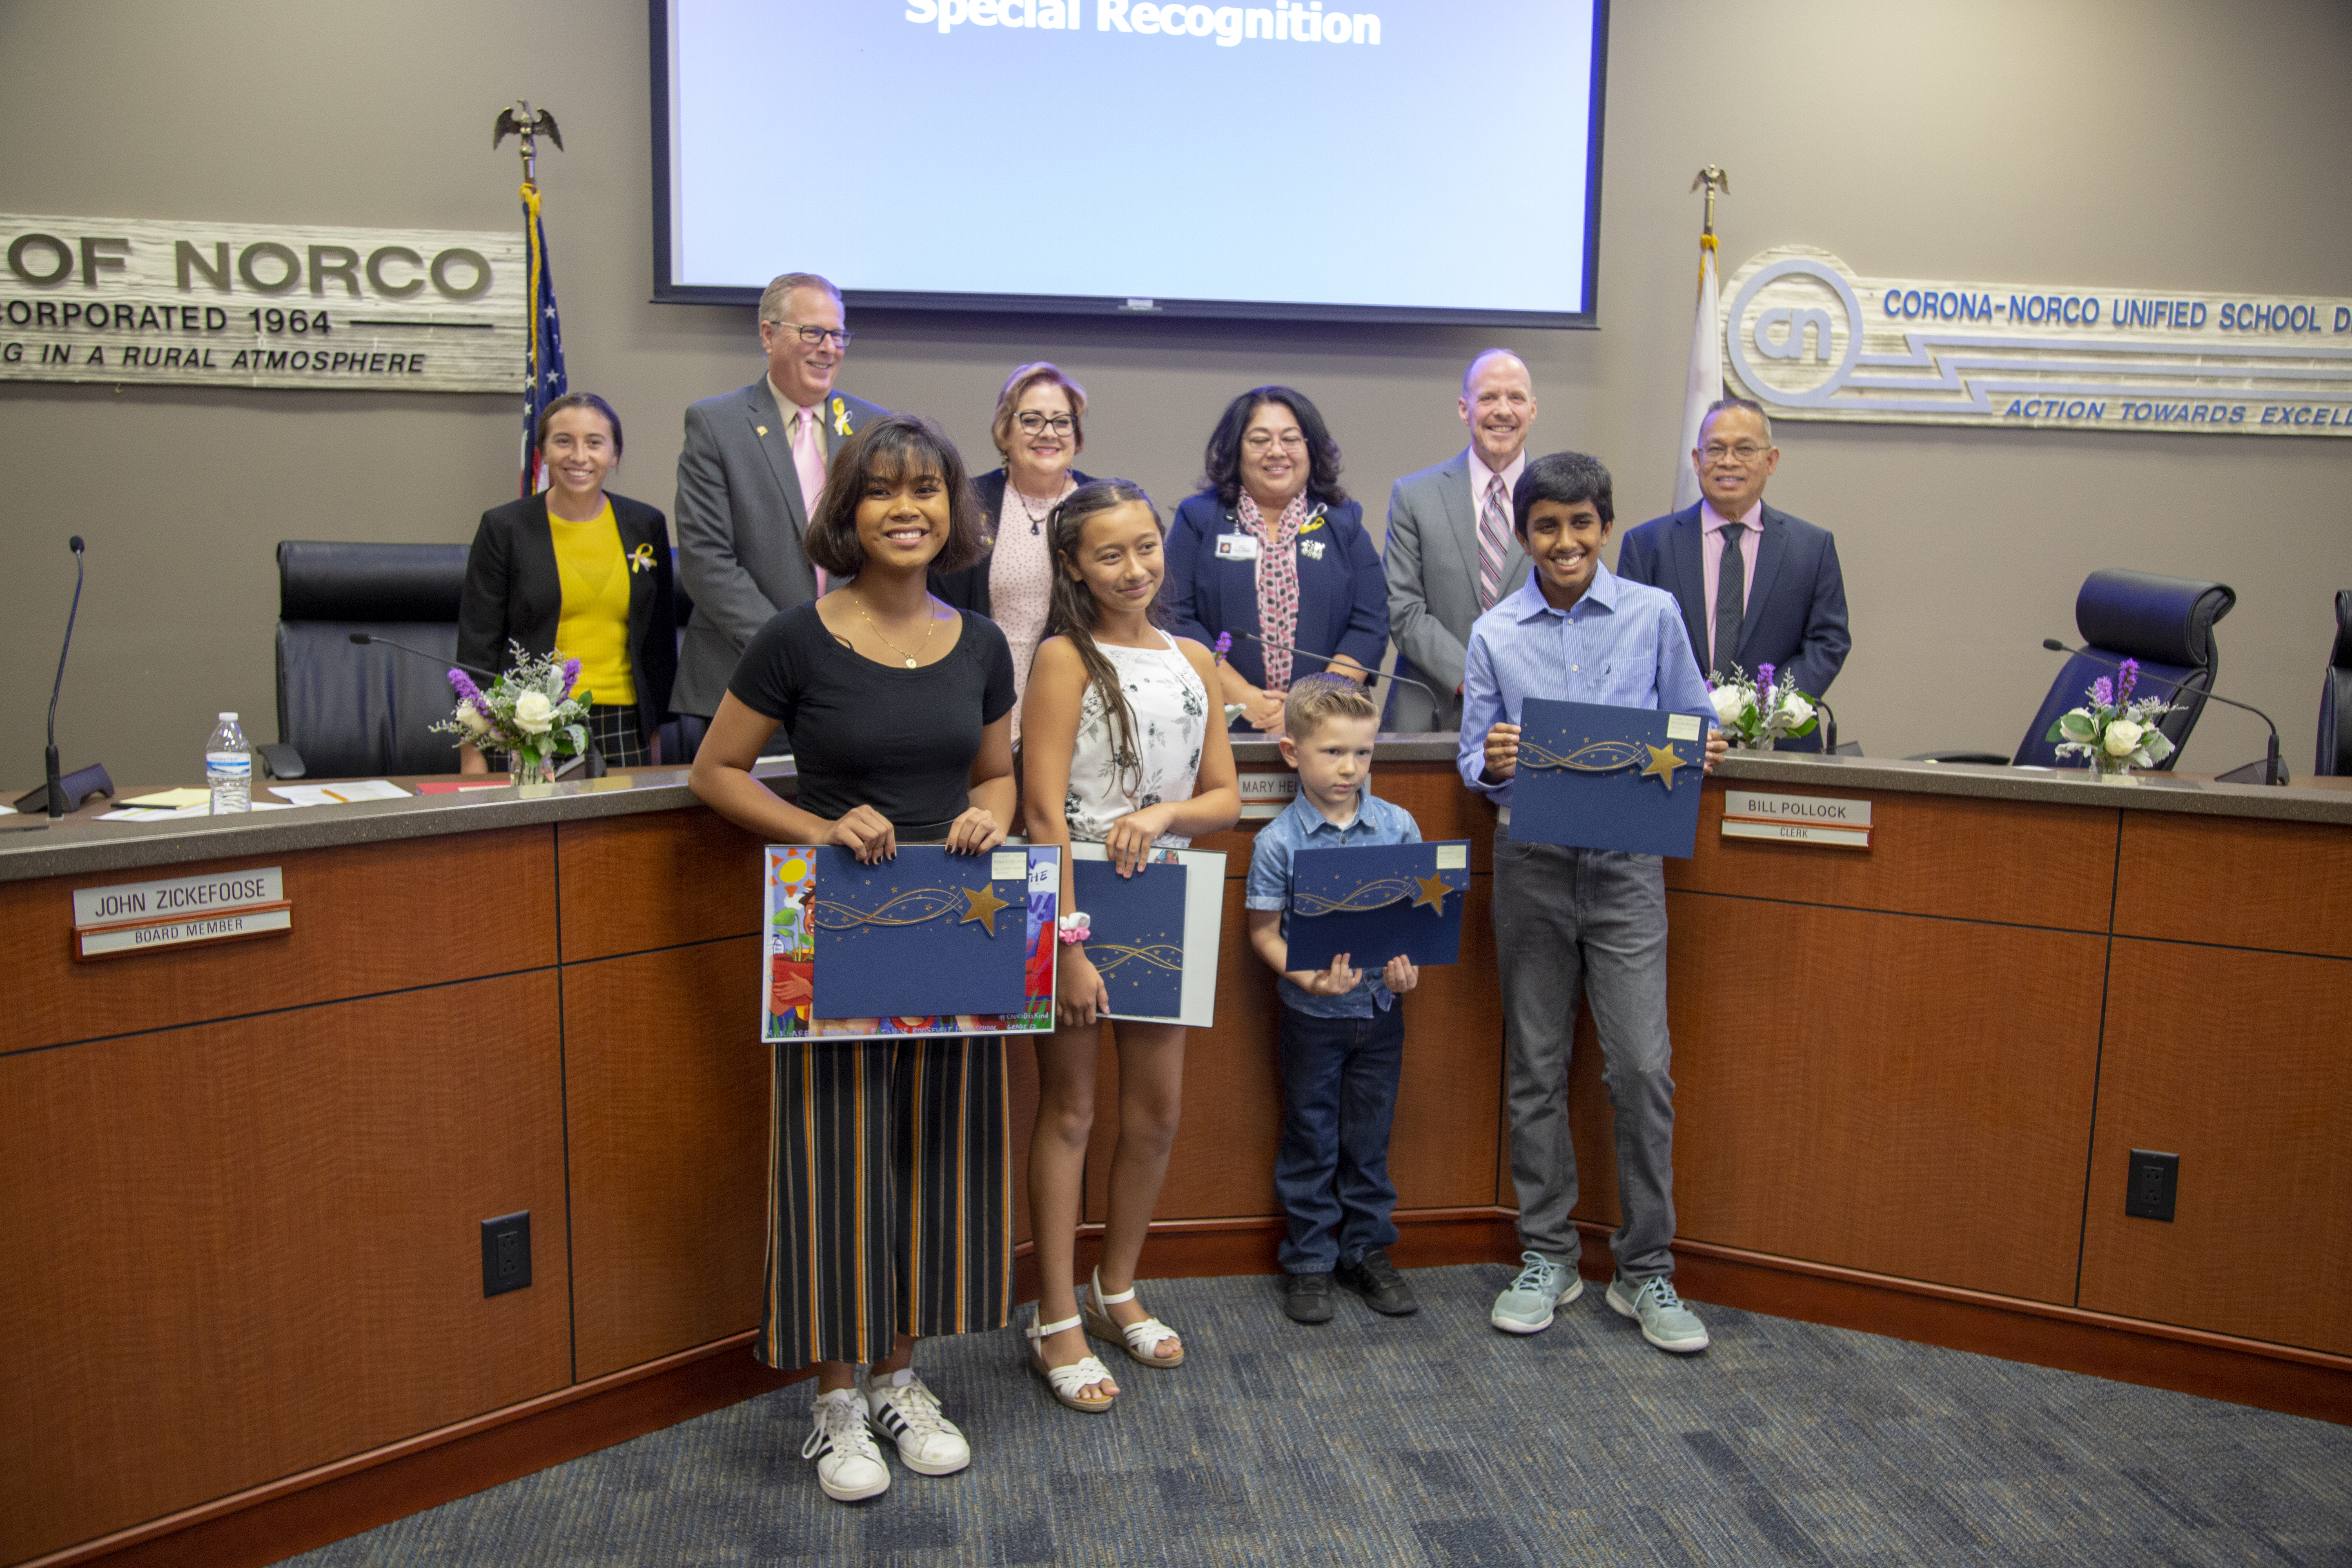 October 2019 Board of Education Special Recognition